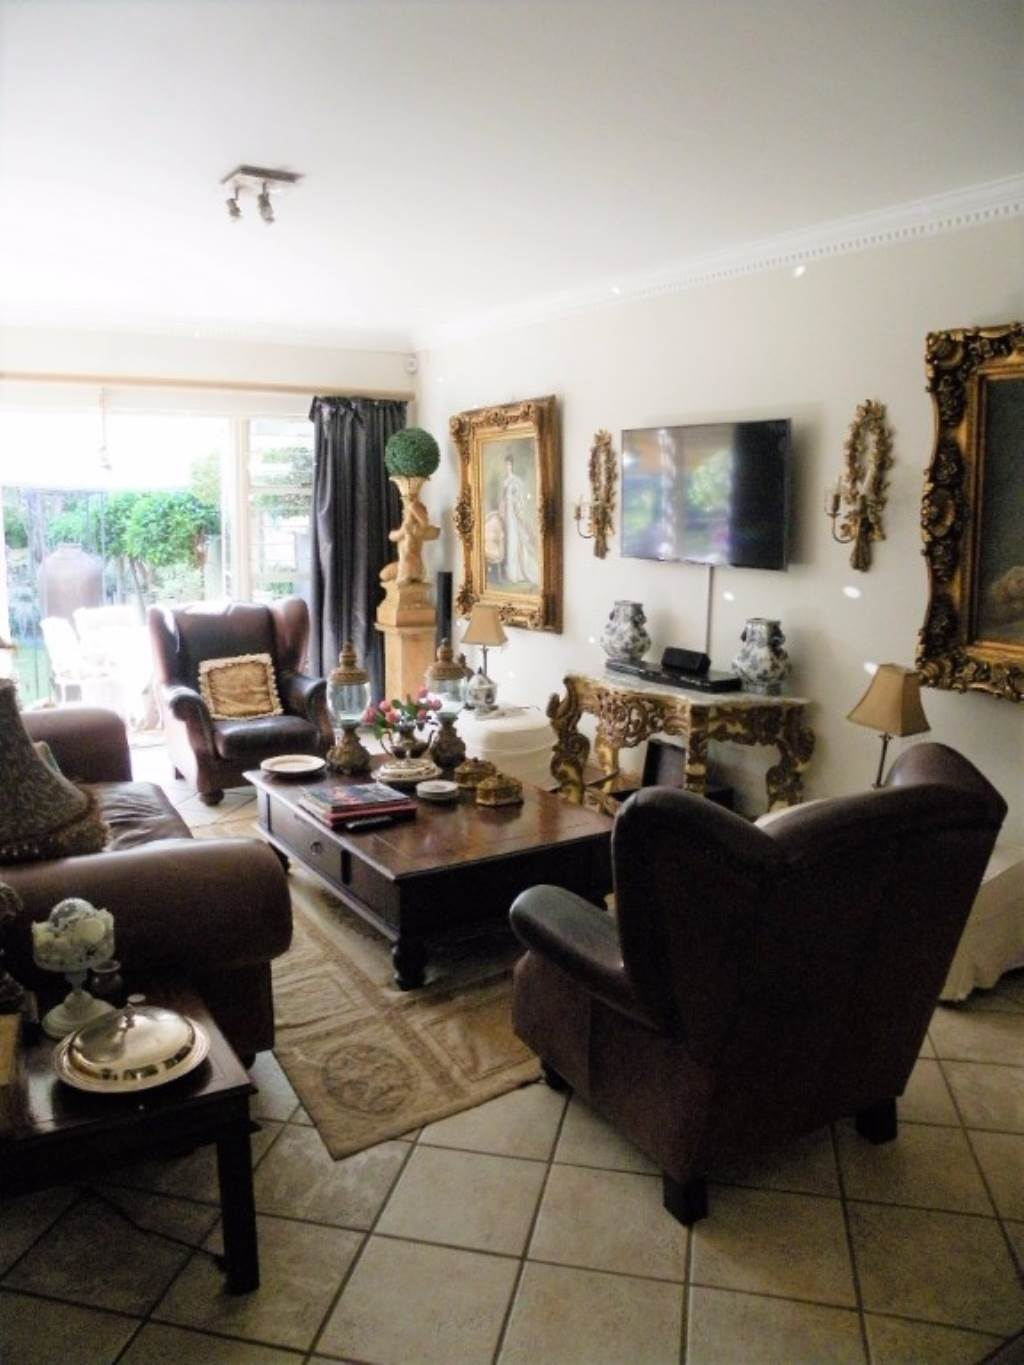 Waterkloof Heights And Ext property for sale. Ref No: 13534763. Picture no 2